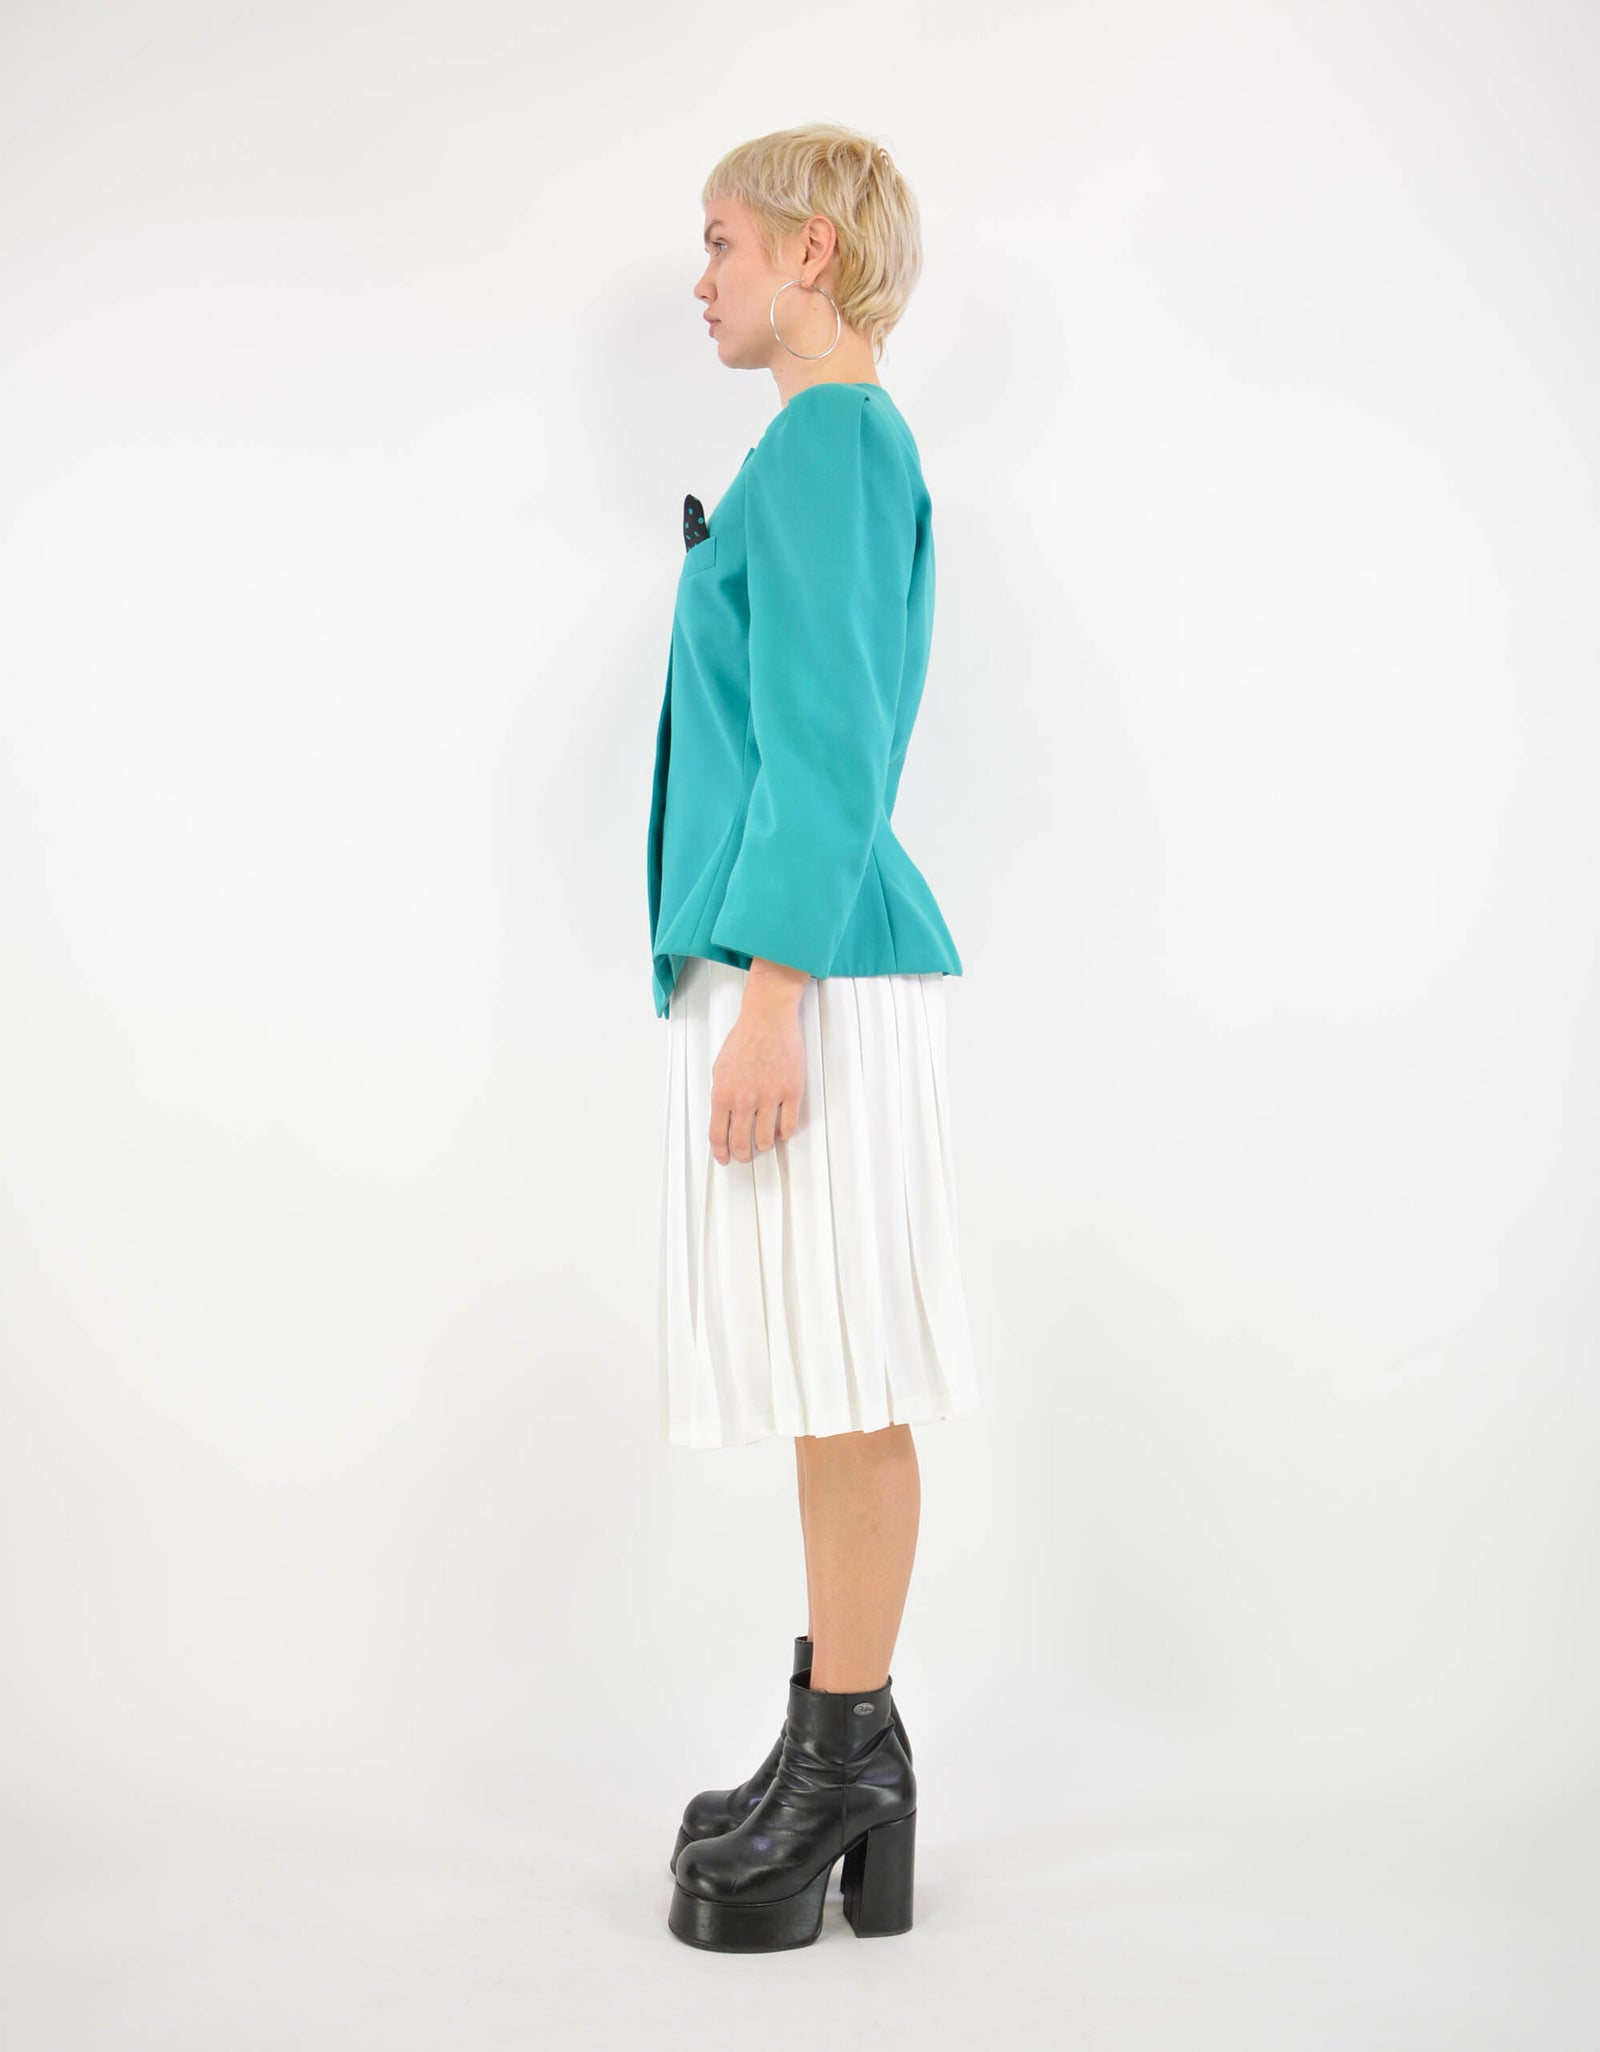 Pleat skirt - PICKNWEIGHT - VINTAGE KILO STORE